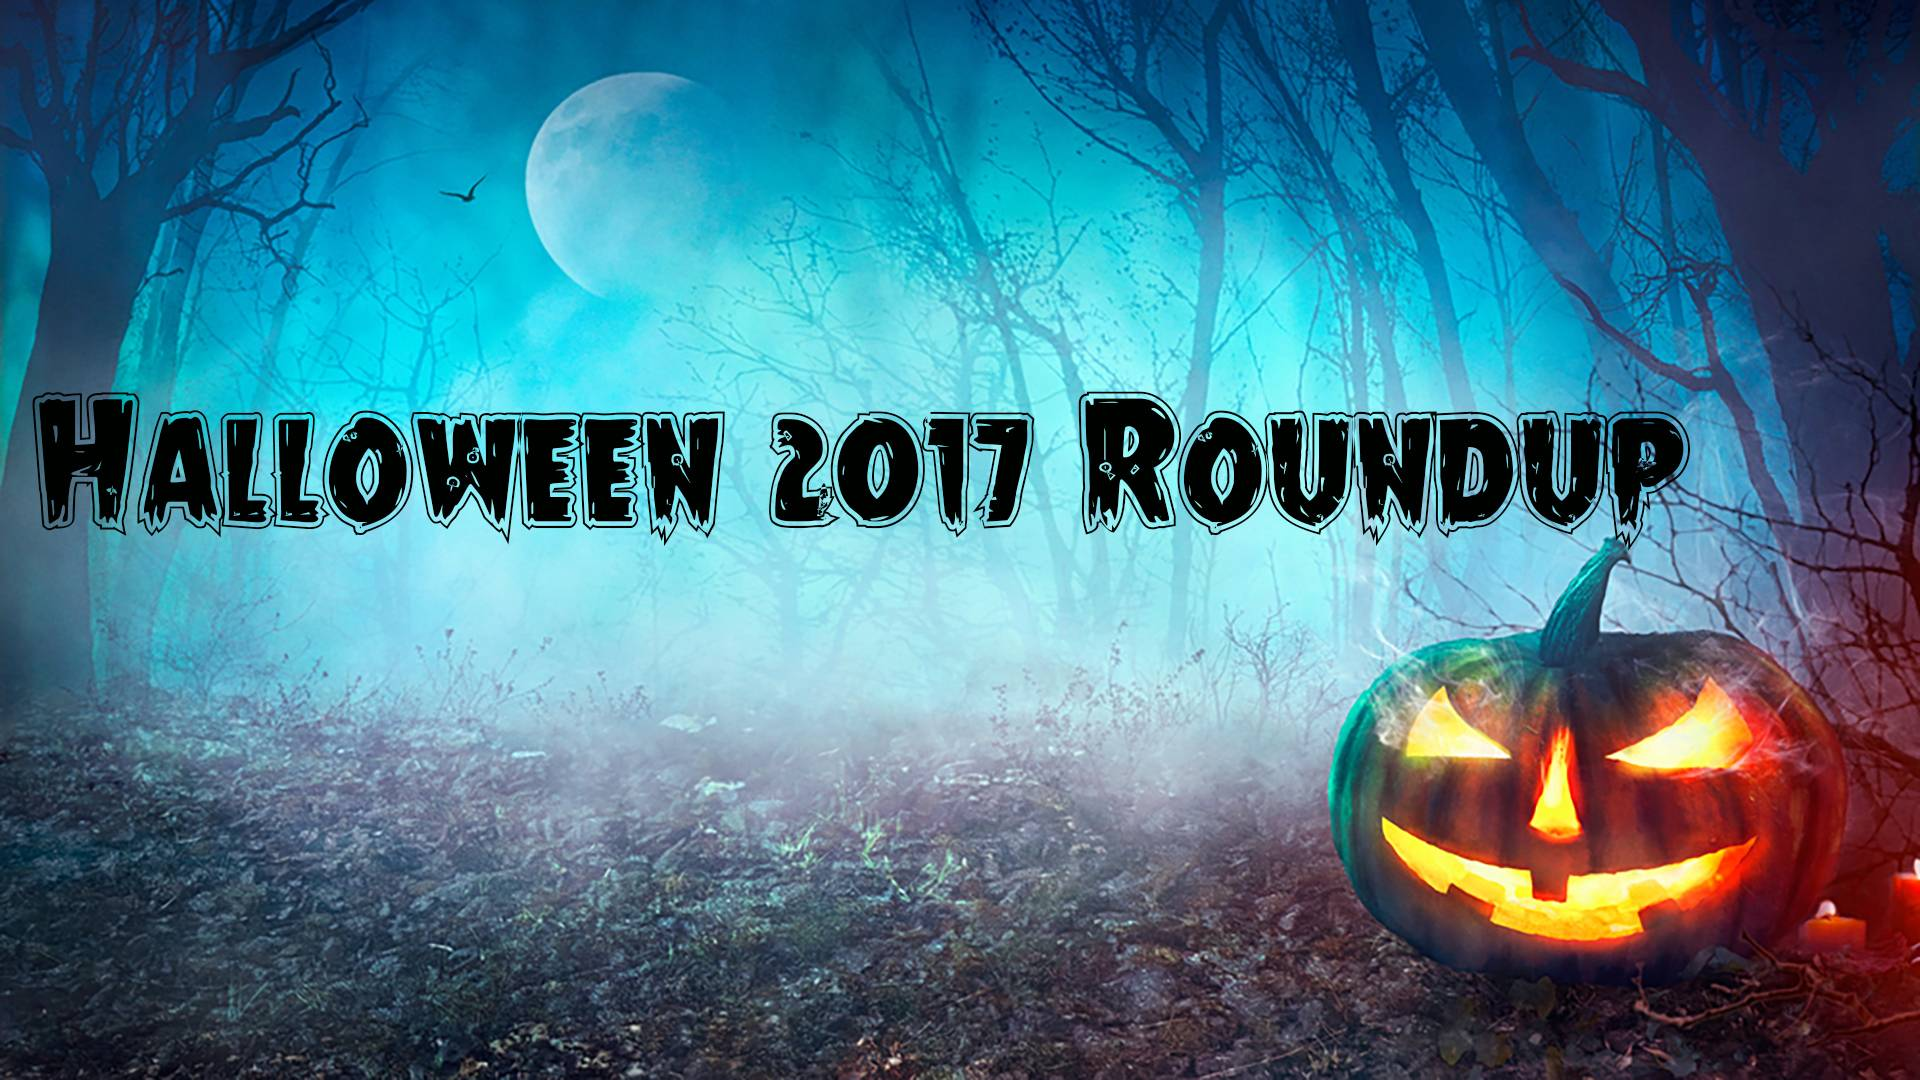 Restaurant roundup amarillo 2017 - Halloween Roundup 2017 Your Guide To Amarillo Area Holiday Fun For Kids And Adults